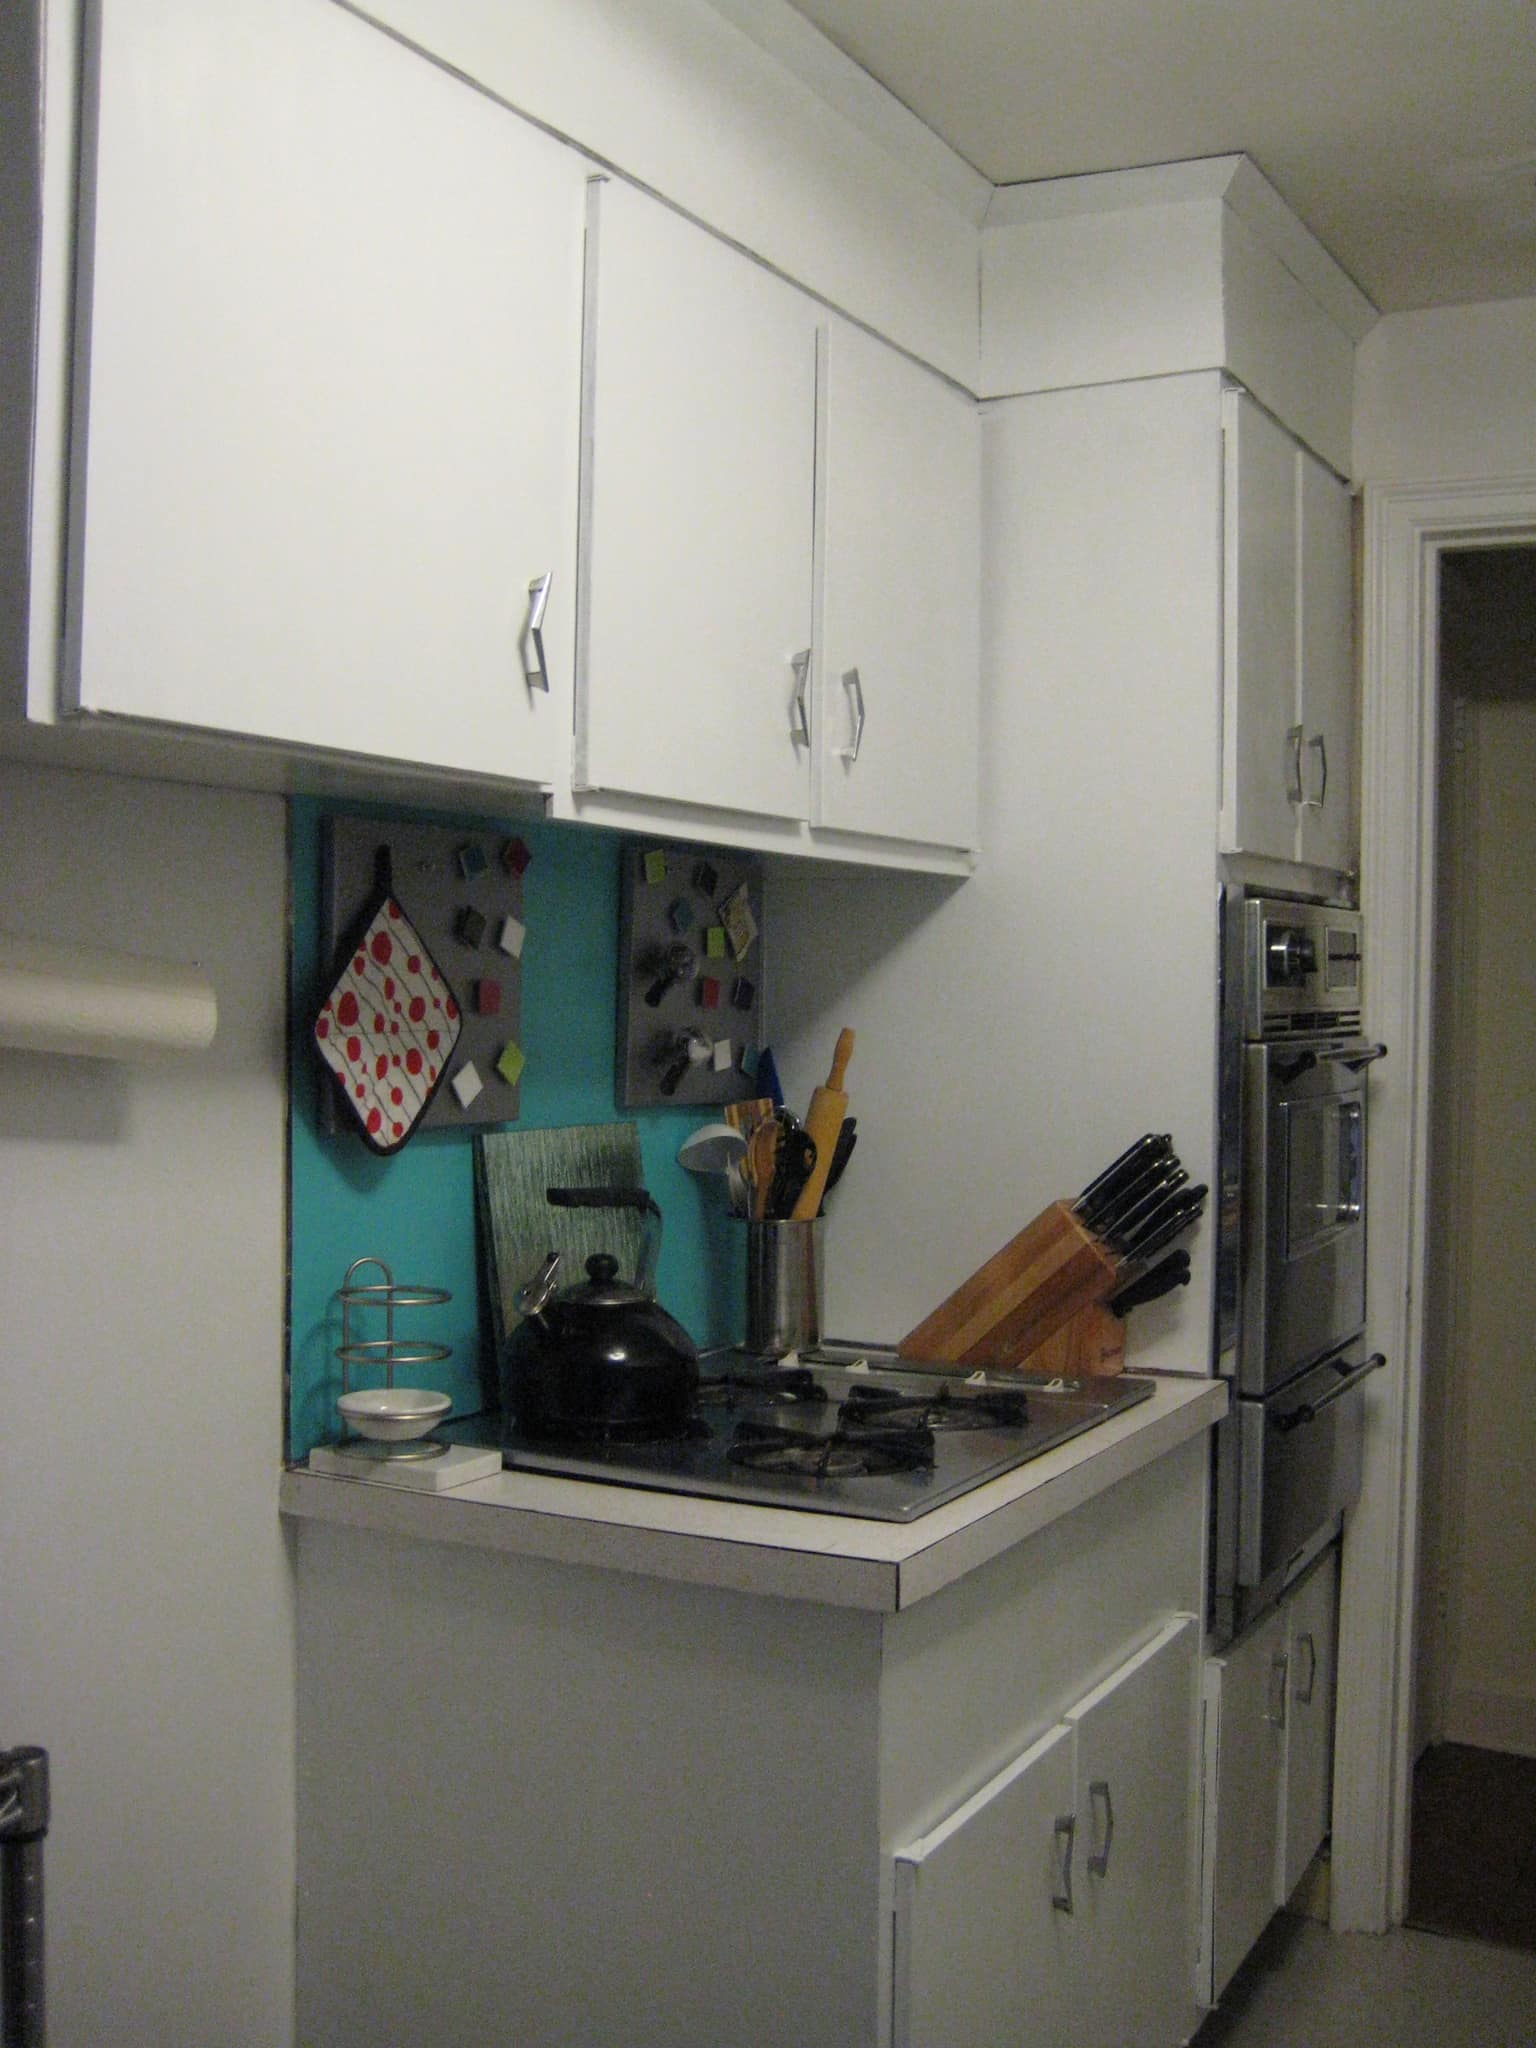 How To Paint Plastic Laminate Kitchen Cabinets Kathleen's